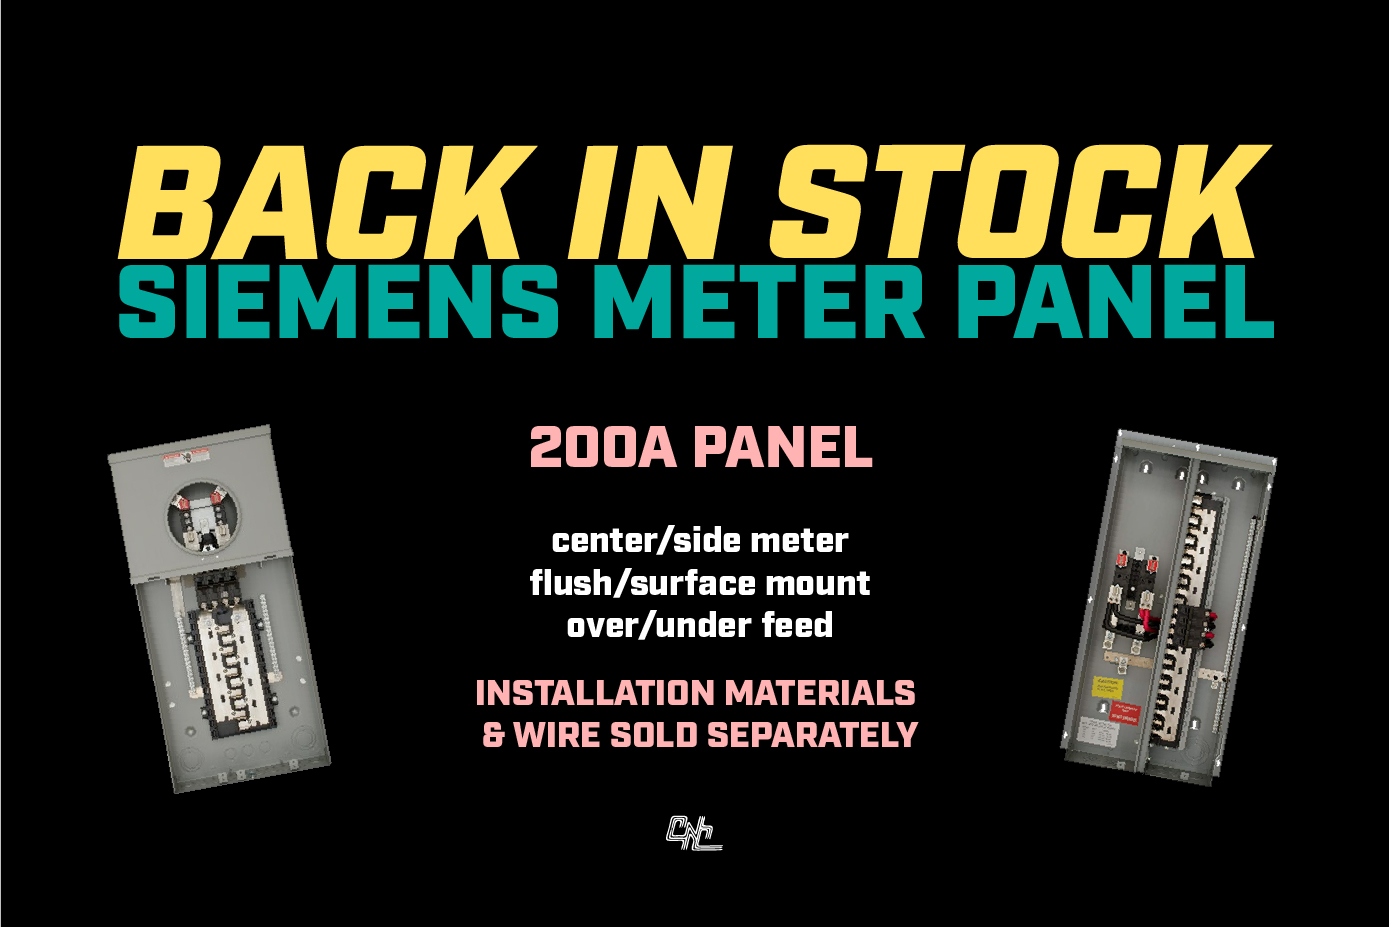 Back in Stock: All Siemens Meter Panels